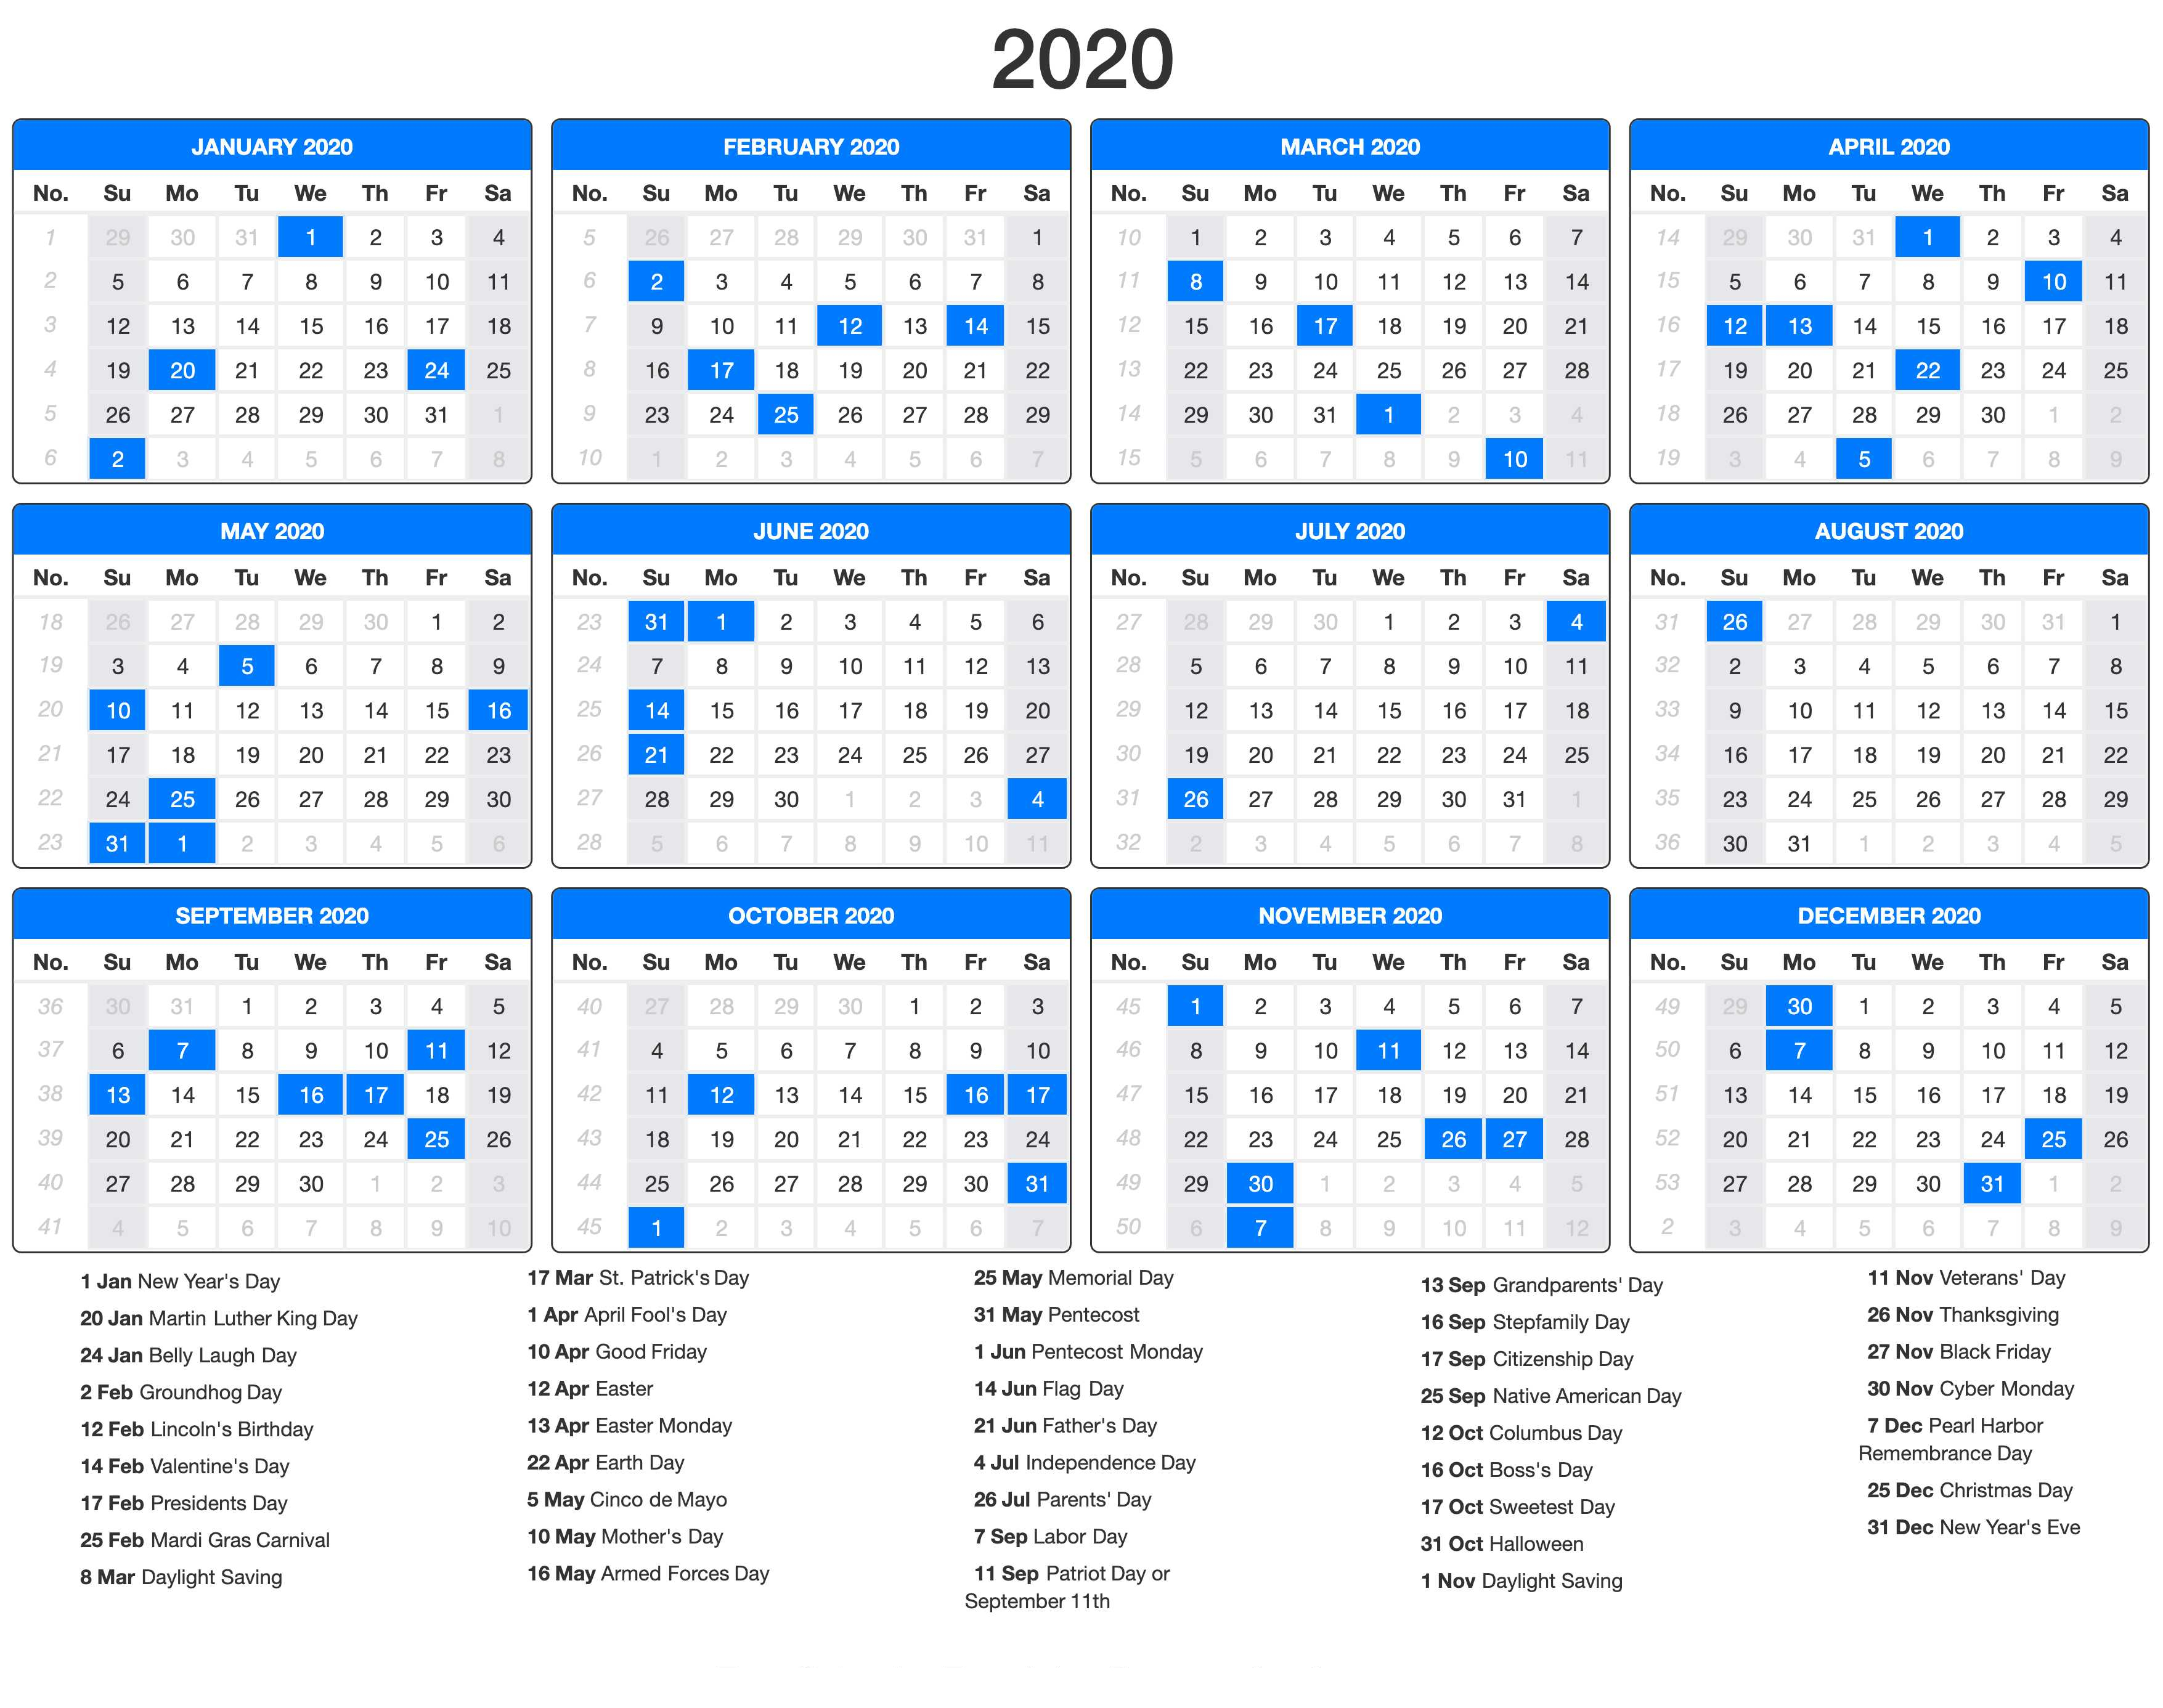 Free Printable Calendar 2020 With Holidays | 12 Month throughout 2020 Calendar With Holidays Printable Free